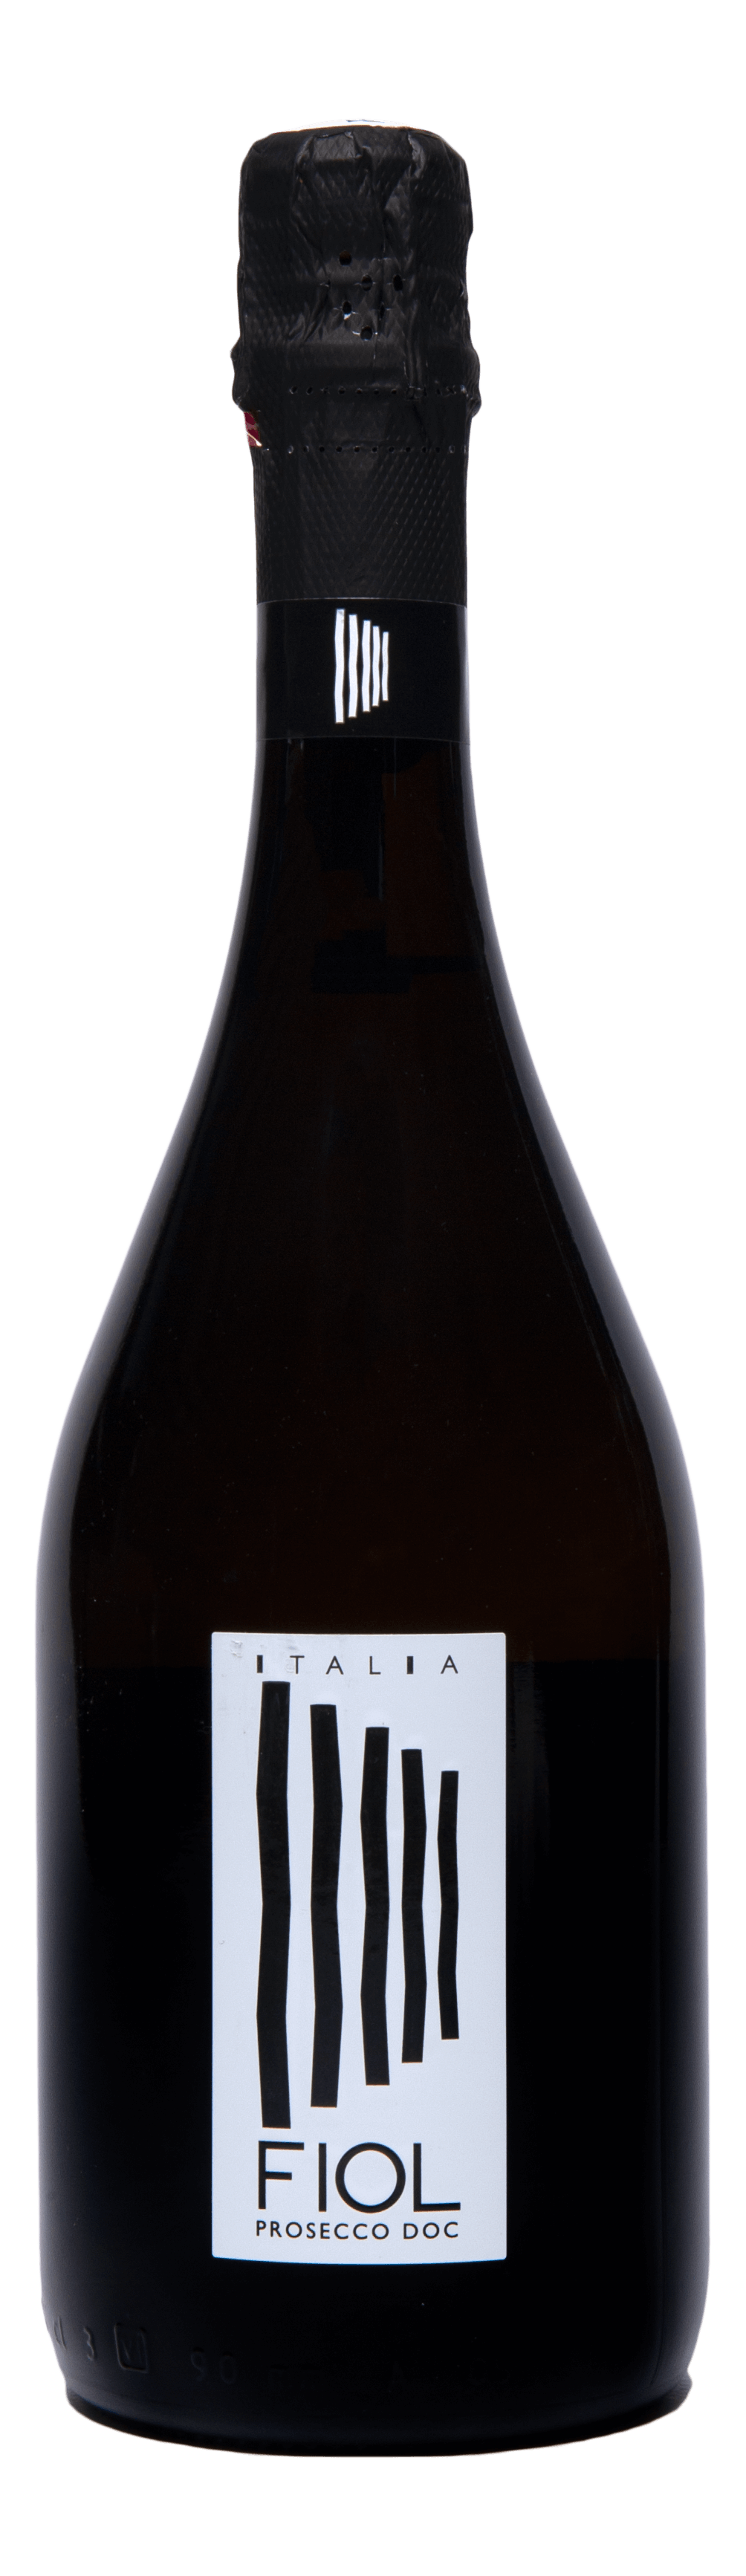 Prosecco Extra Dry Doc Fiol - Fiol 0,75 lt